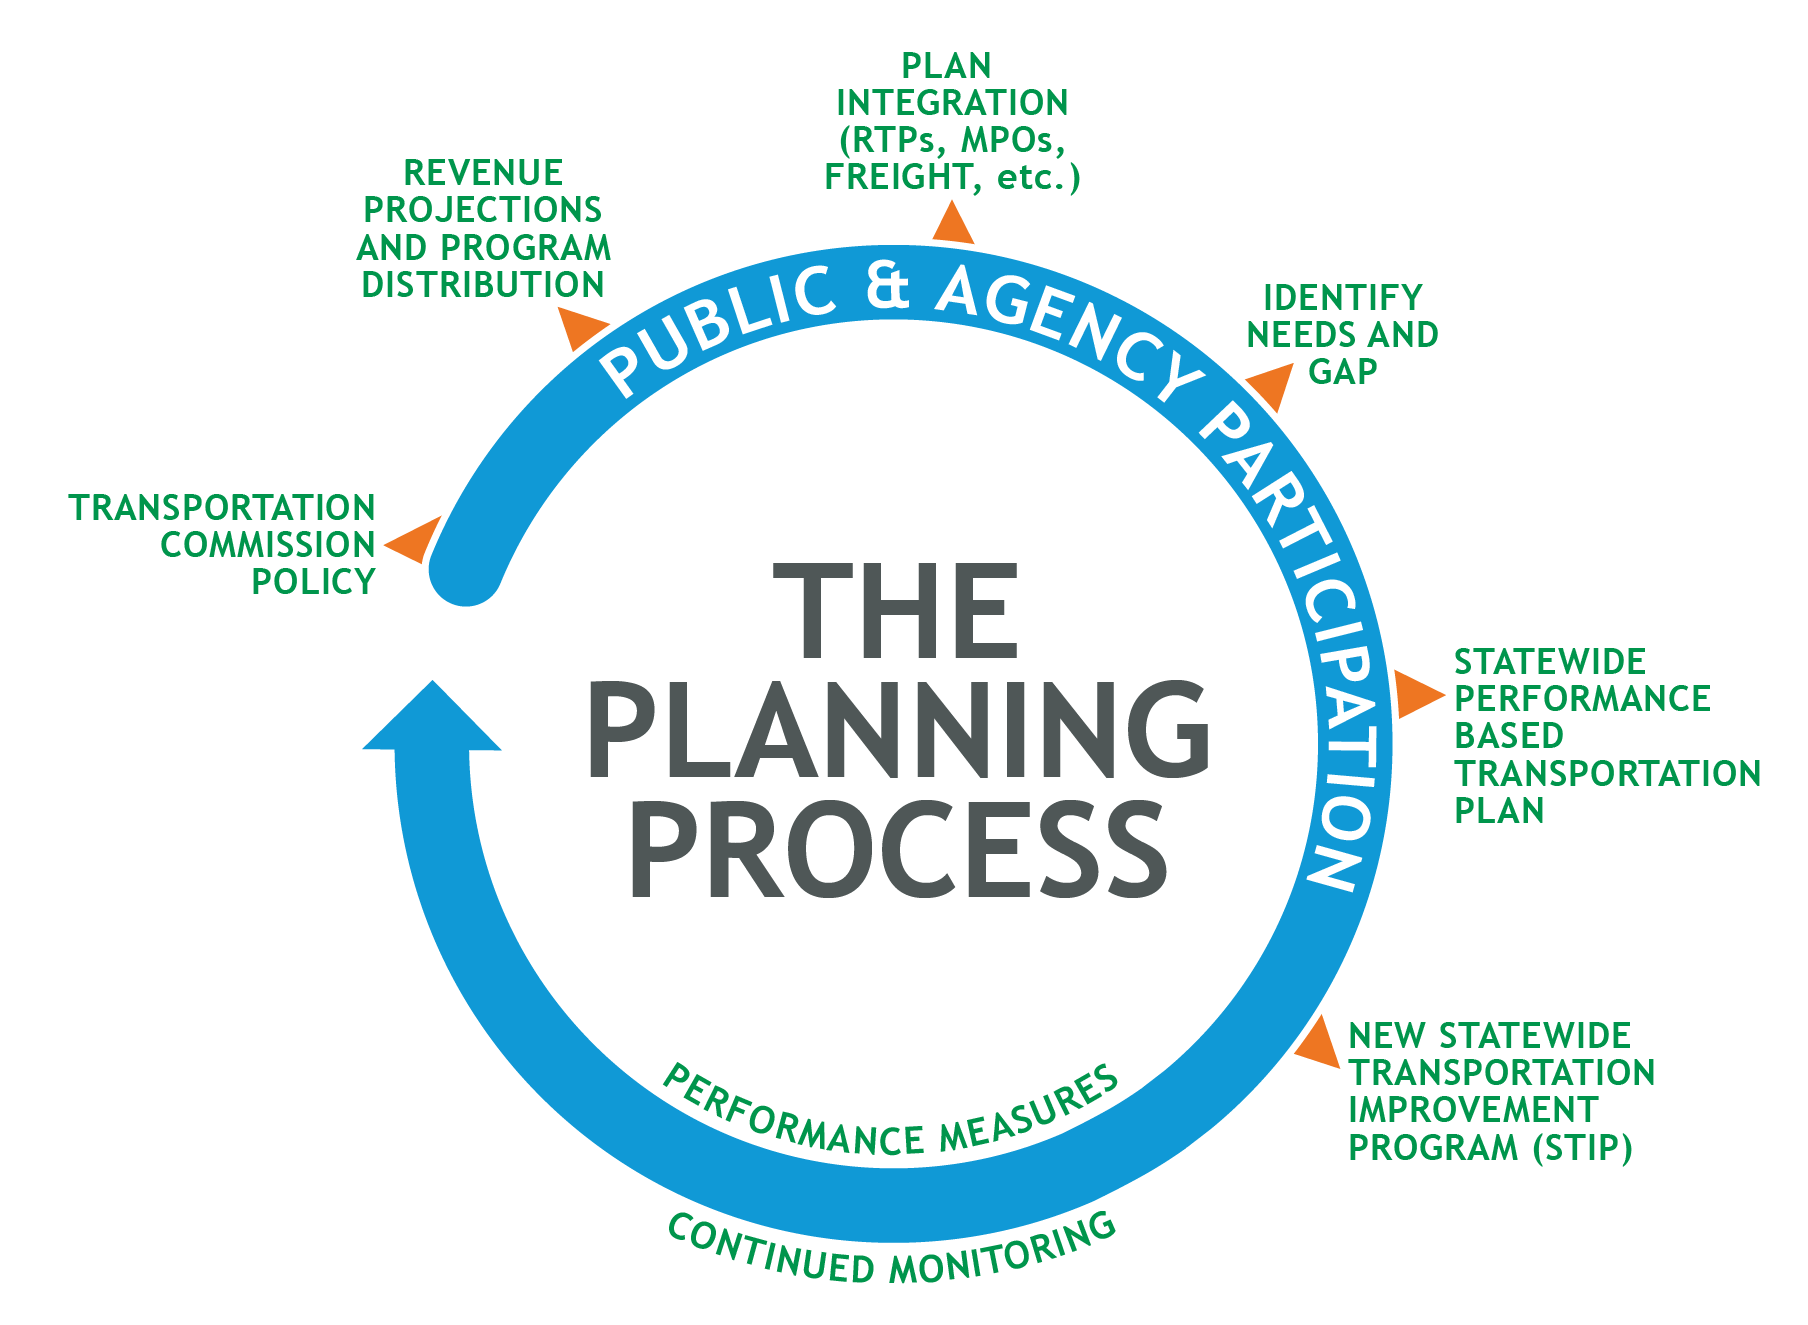 This is a graphic shooing the planning process as a cycle.